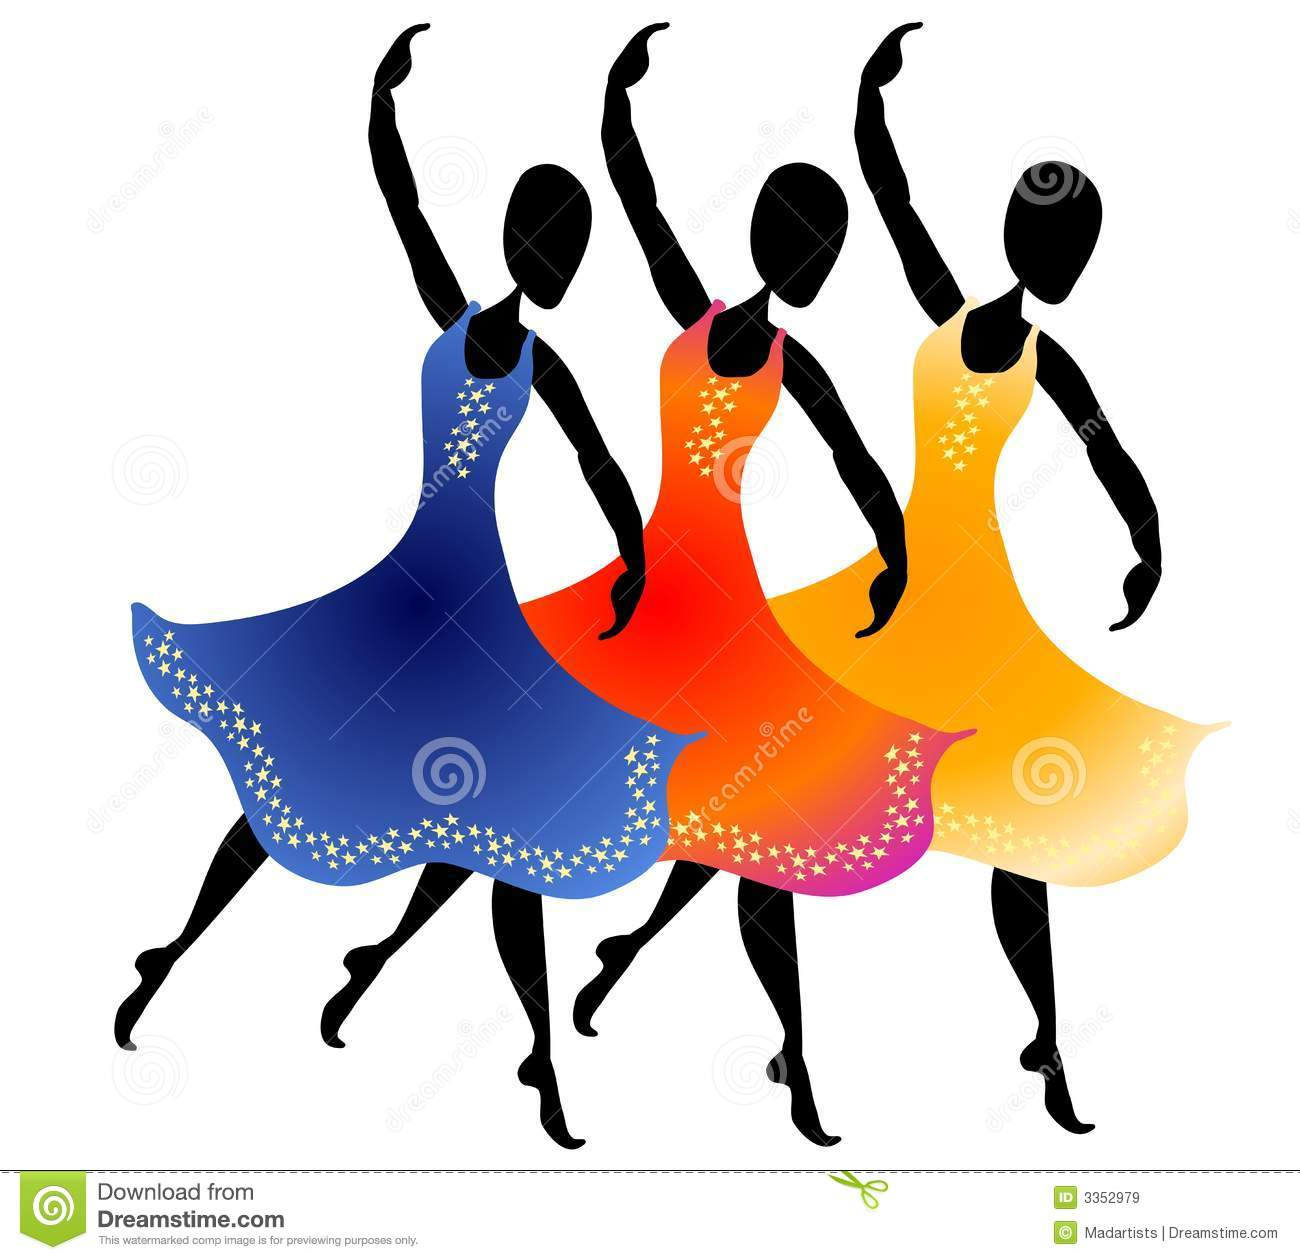 3 women dancing clip art stock illustration illustration of images rh dreamstime com free stock illustrations clipart free stock clip art rx